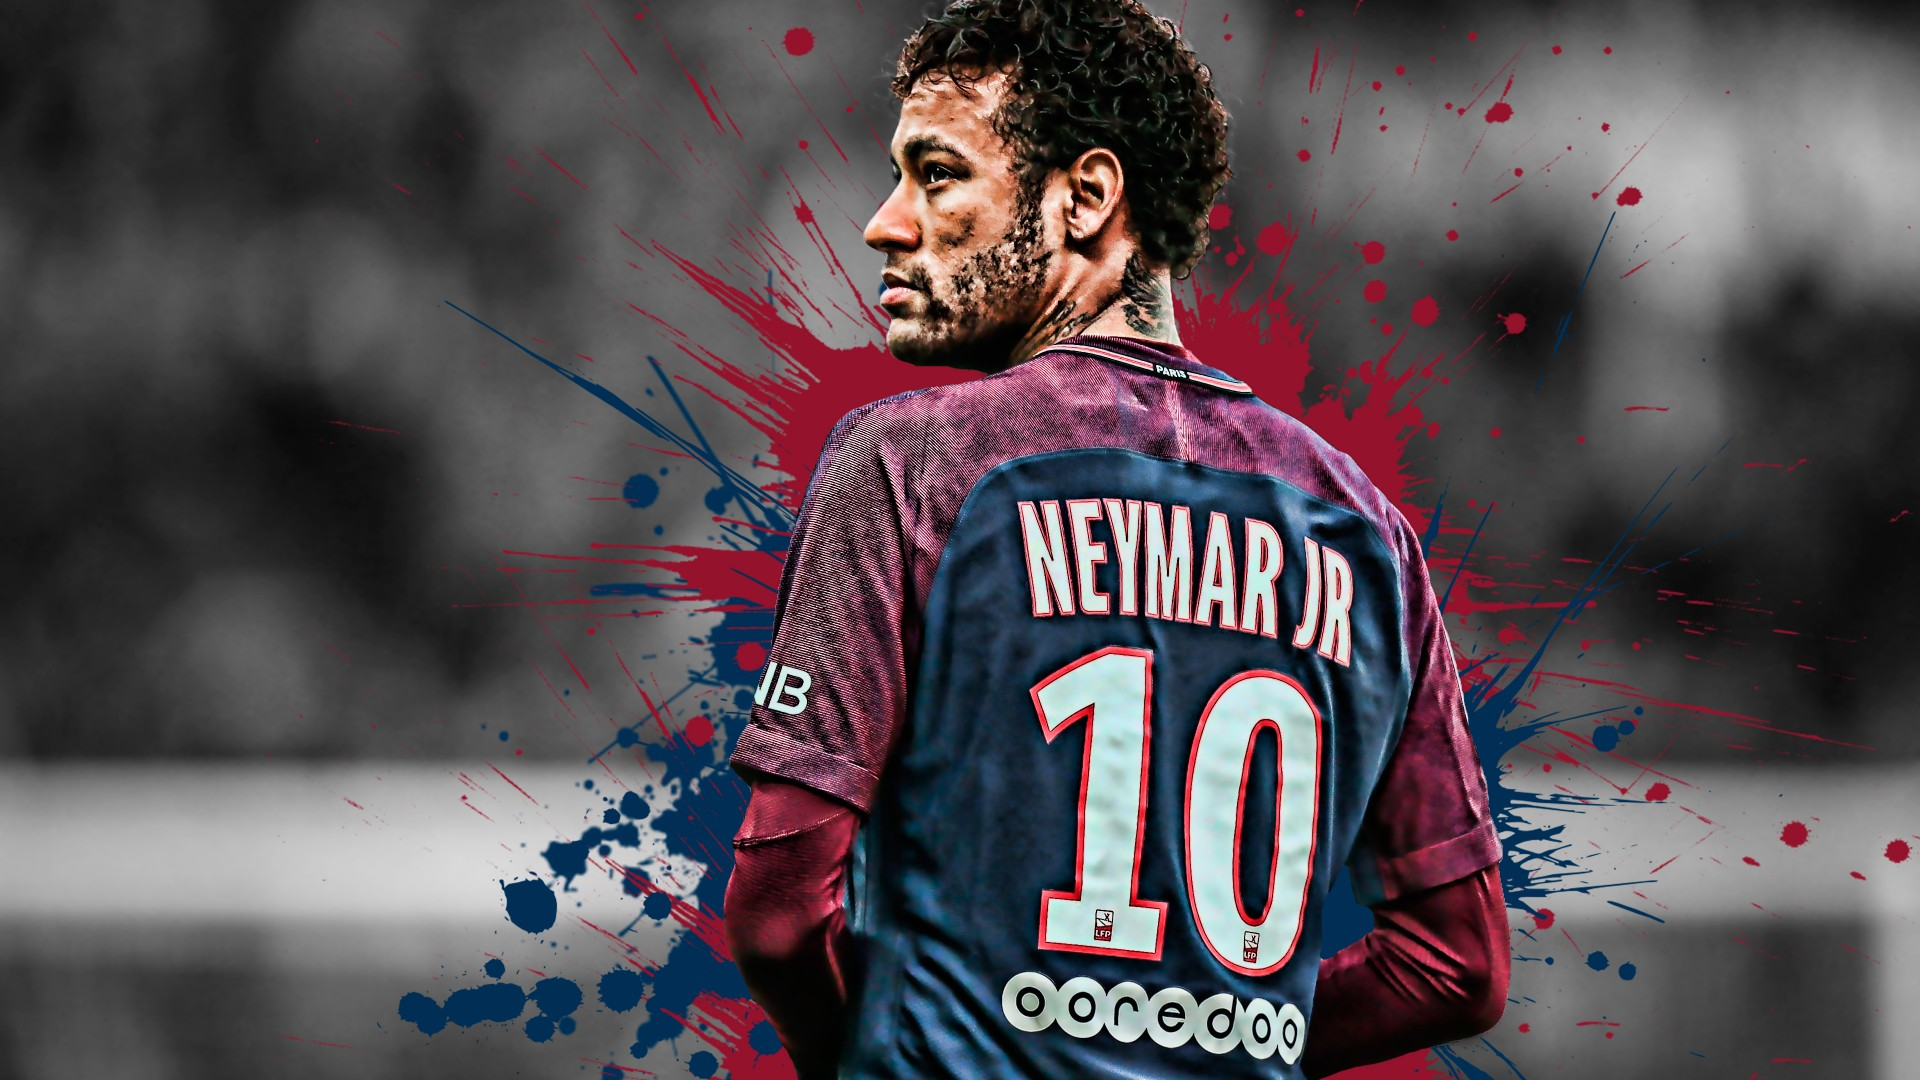 Wallpaper 3d Iphone 6 Neymar Brazilian Football Player 4k Wallpapers Hd